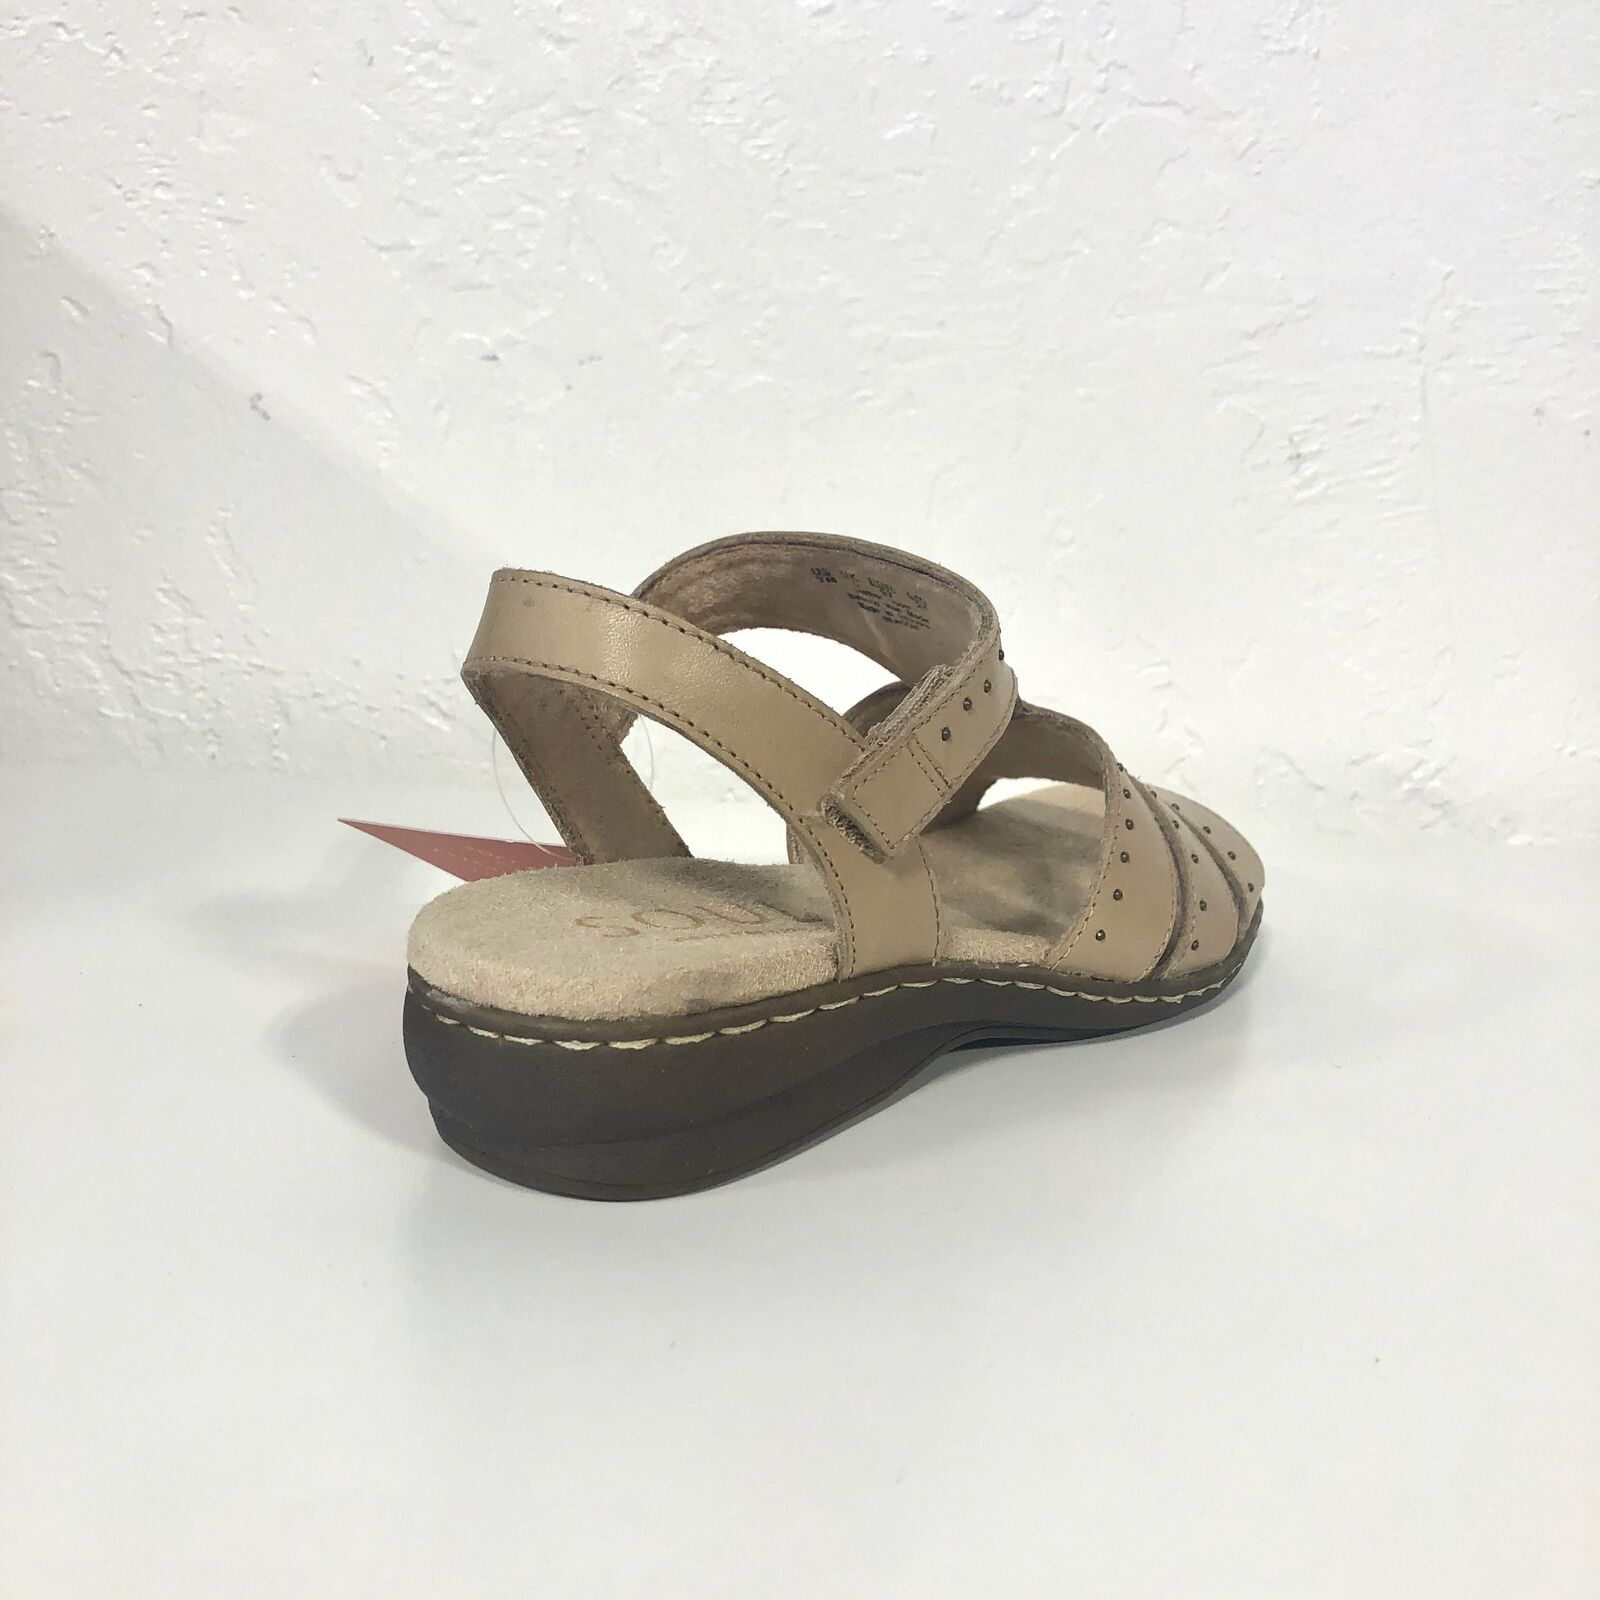 Beacon Gingersnap Leather Sandals Flats